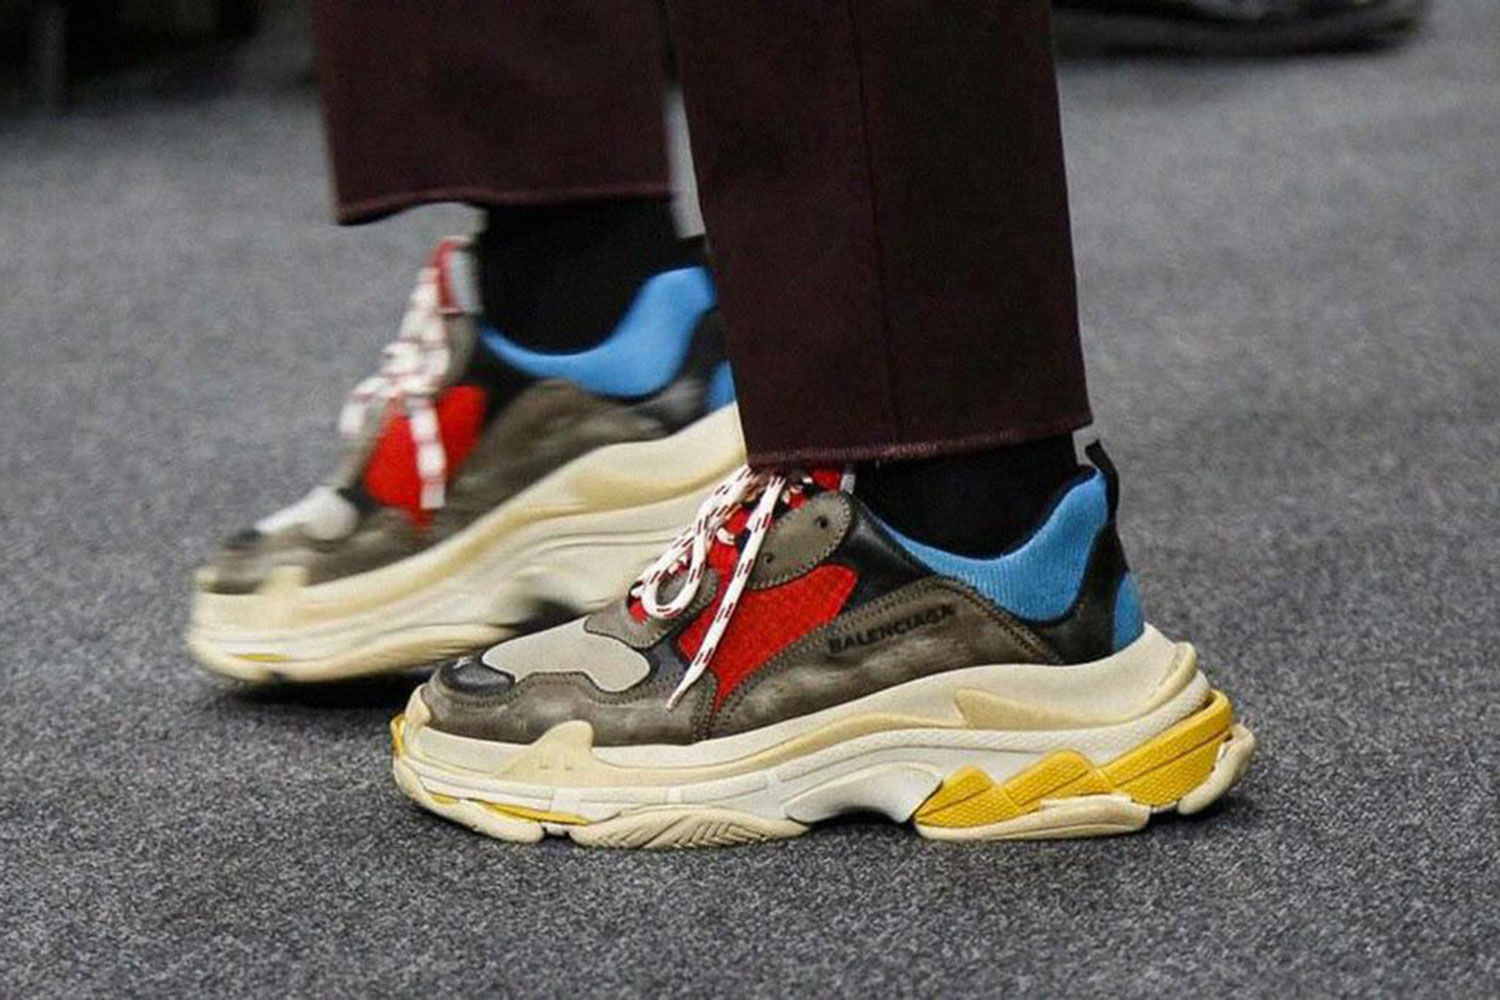 What's trending: Ugly sneakers (could